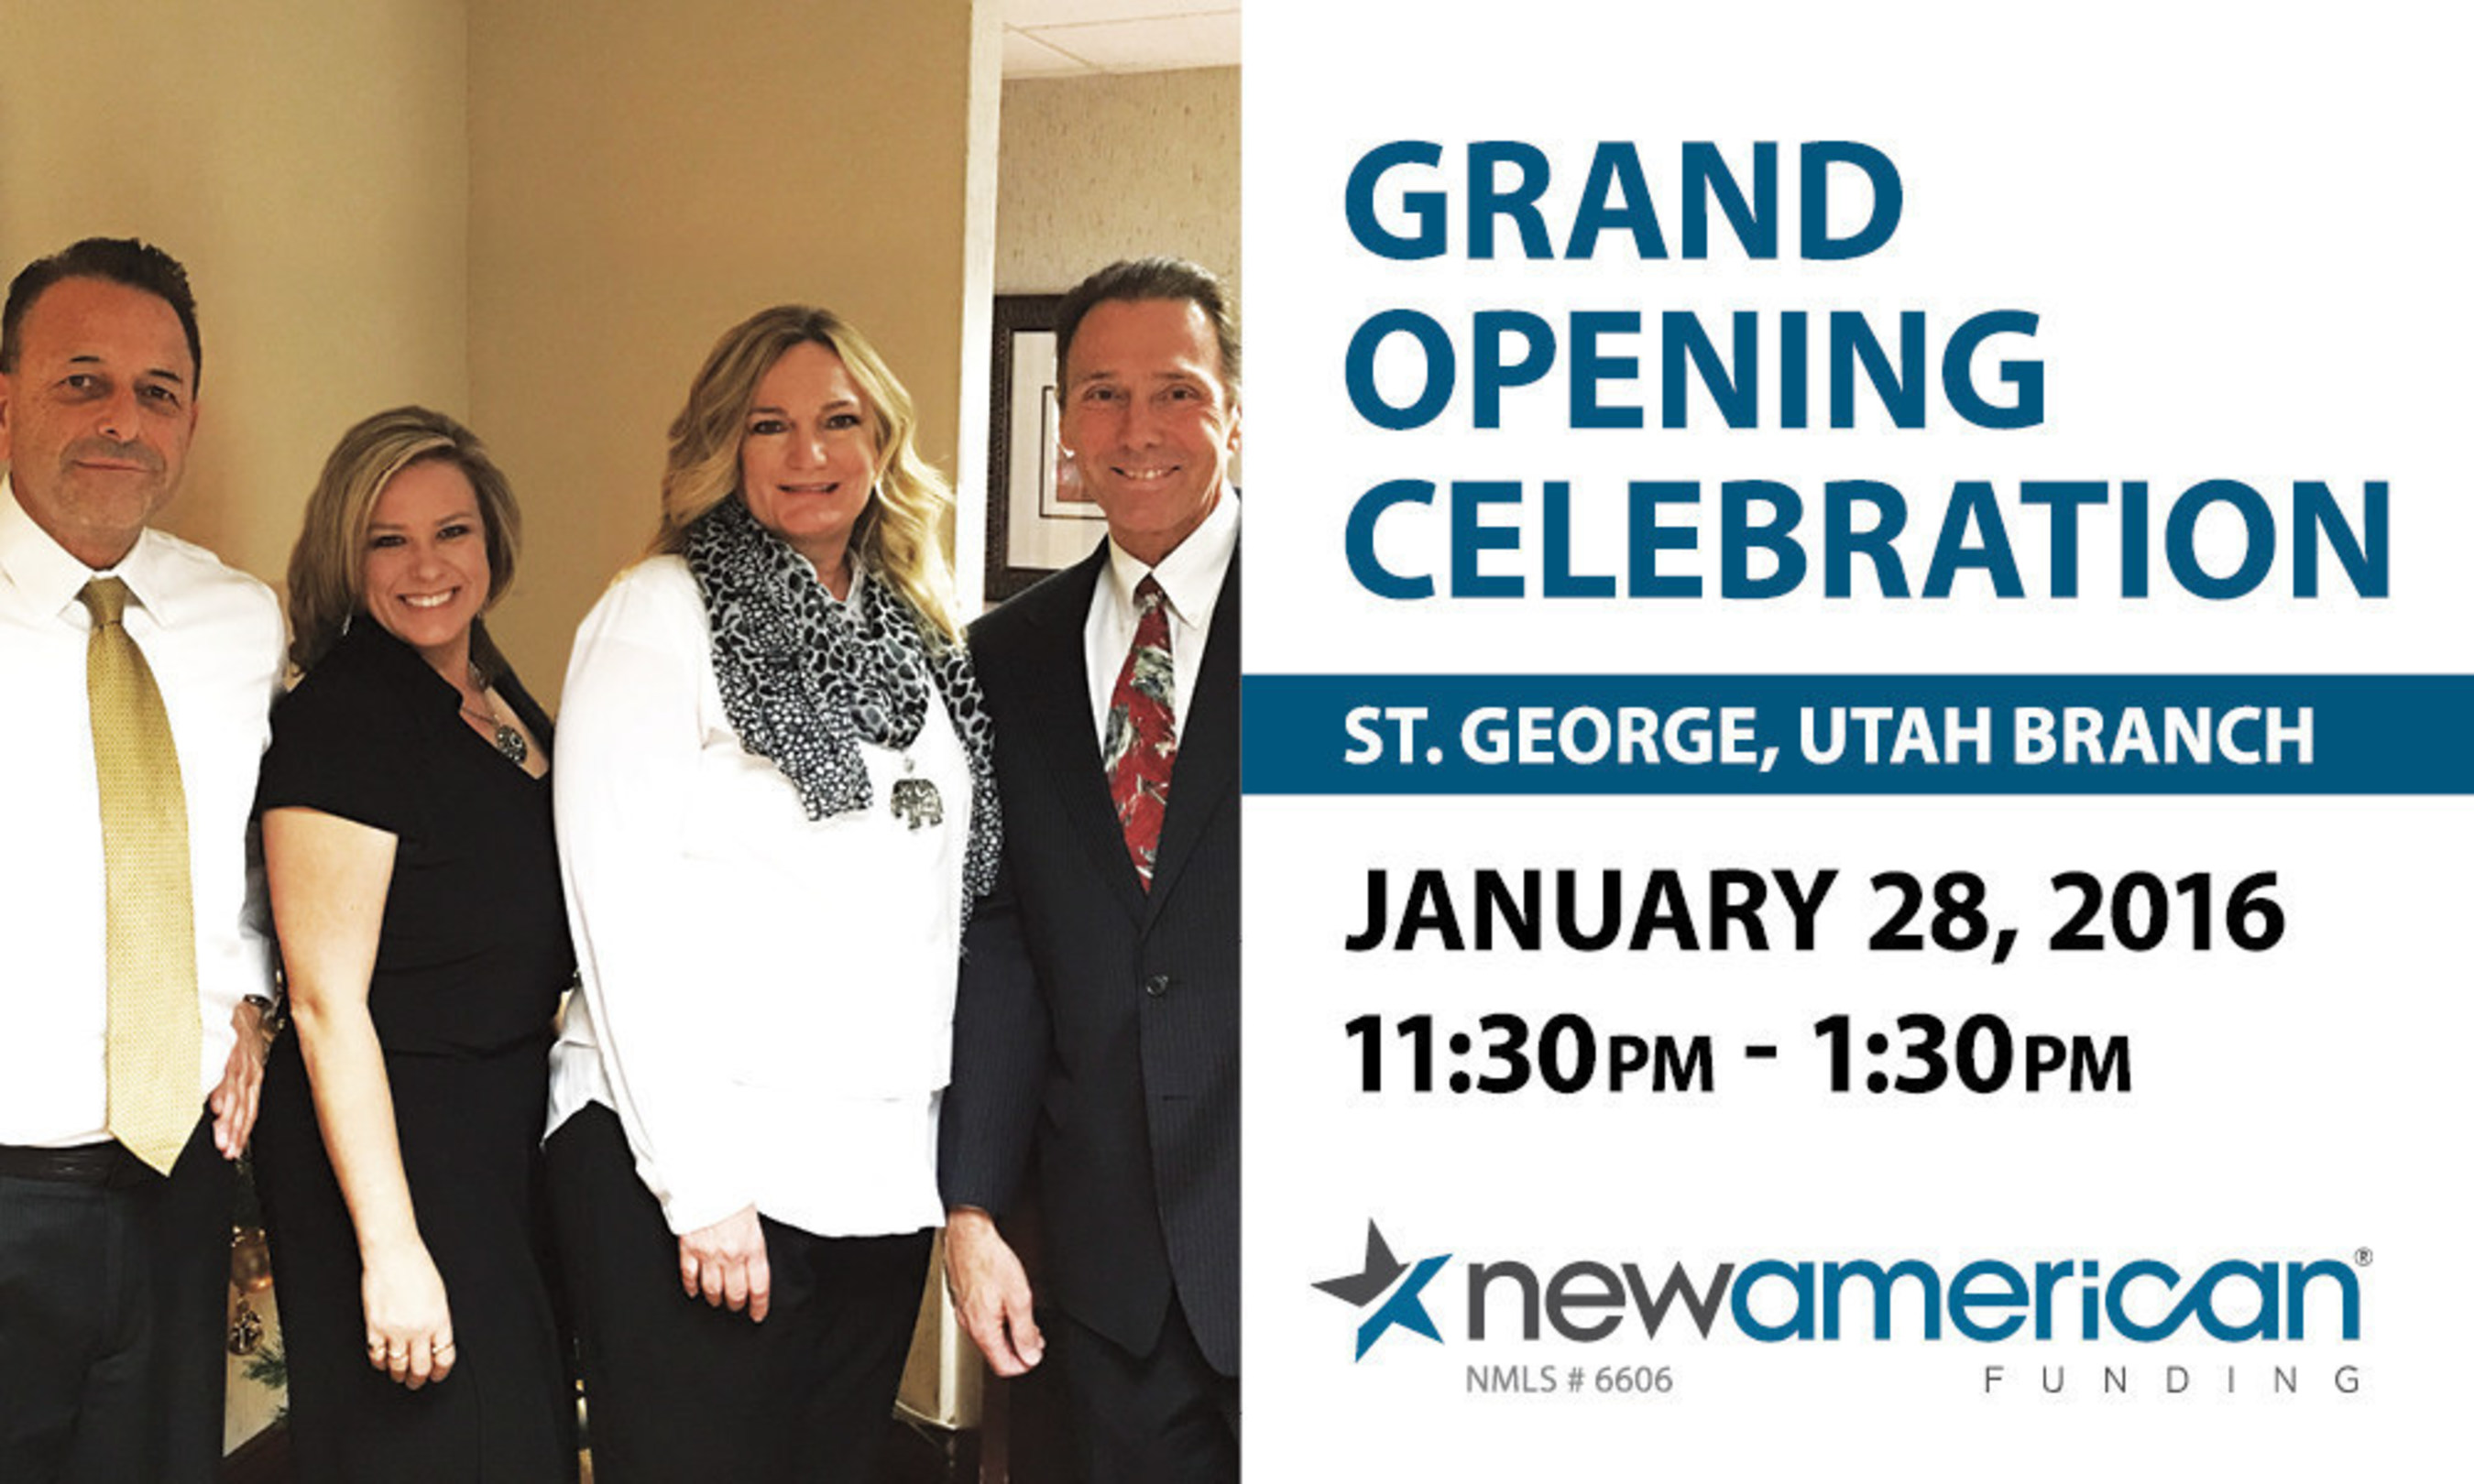 New American Funding Brings Affordable Home Loans to St. George, UT with New Branch Opening